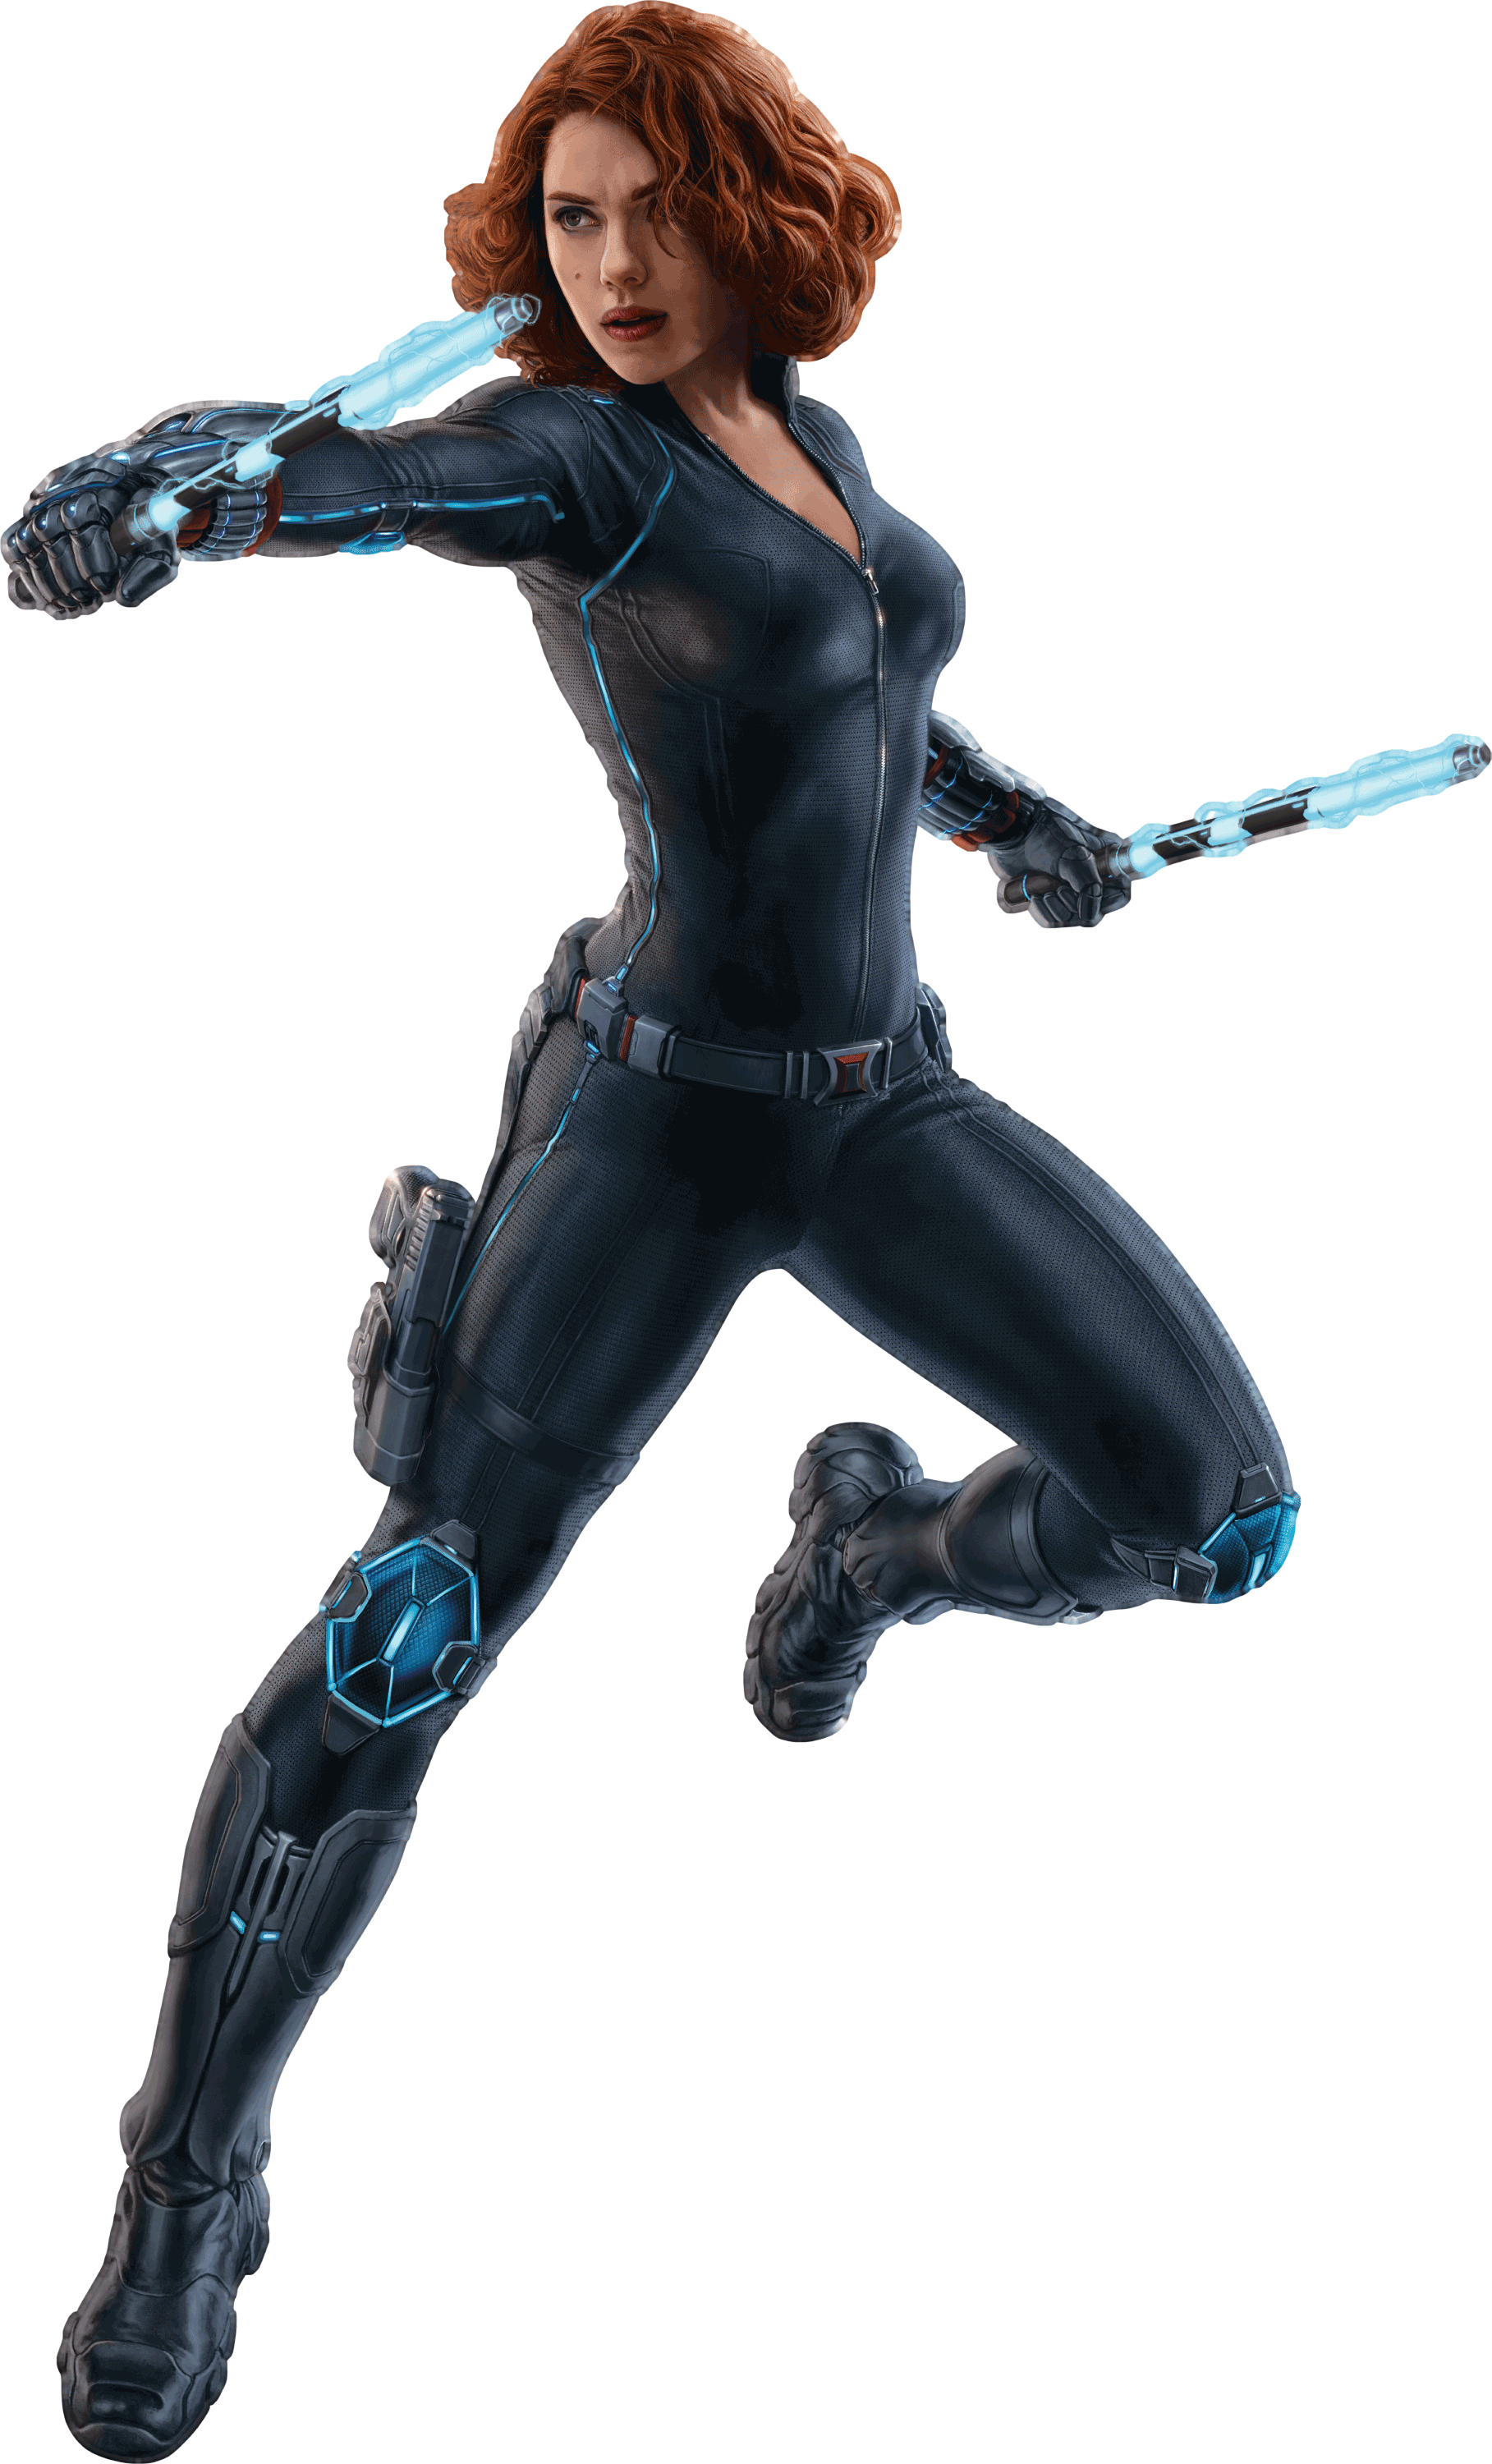 Black Widow Marvel PNG Images.